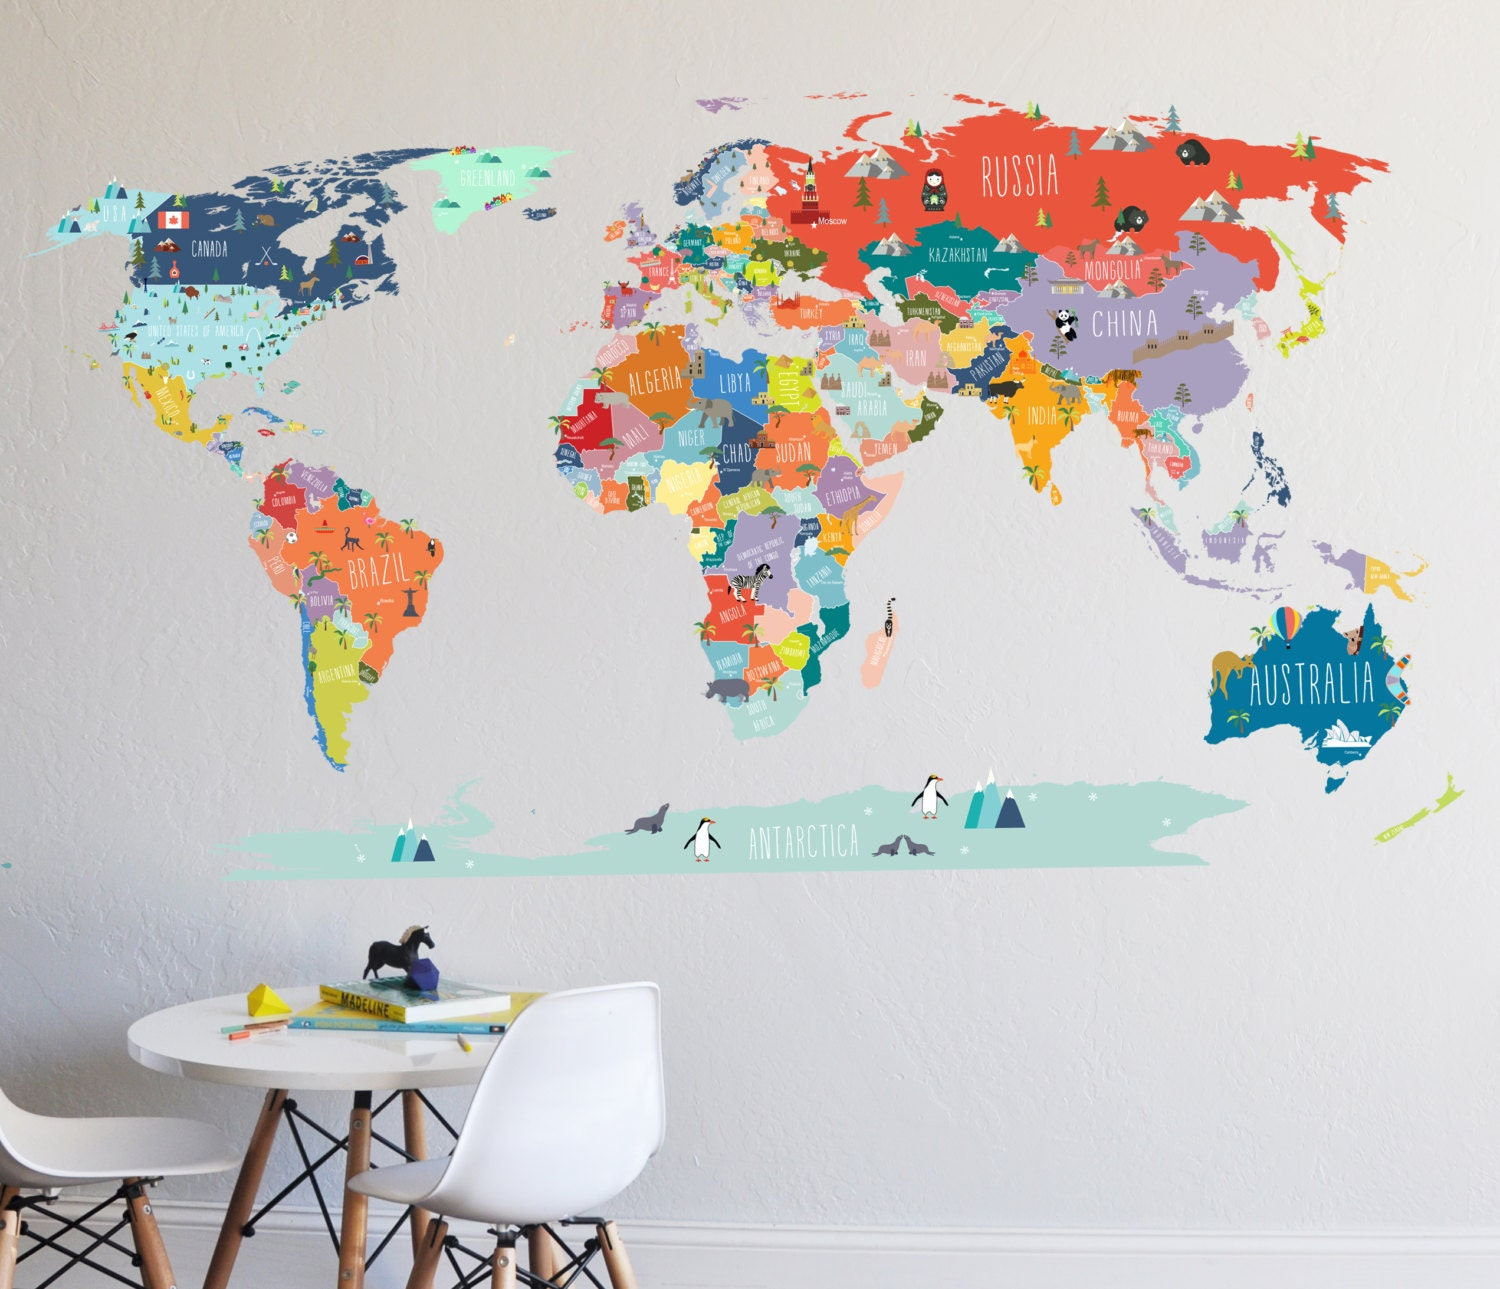 World map sticker for wall india -  Wall Sticker Room Decor Map Decor Zoom